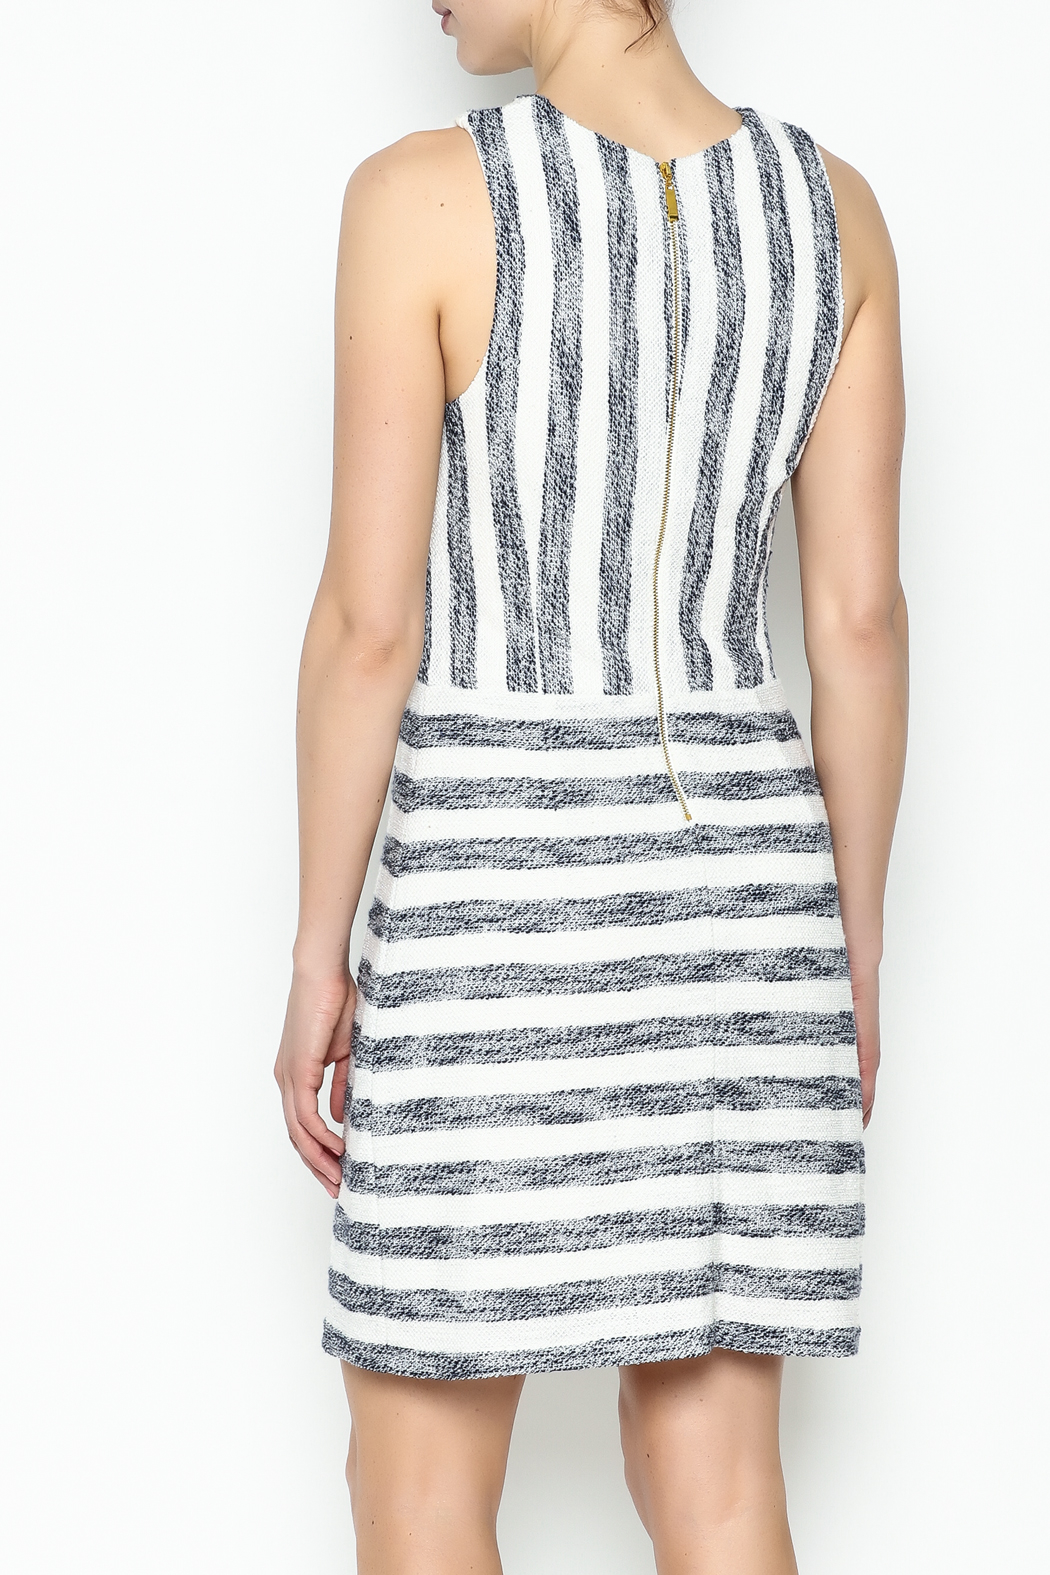 Julie Brown NYC Sailor Tweed Dress - Back Cropped Image